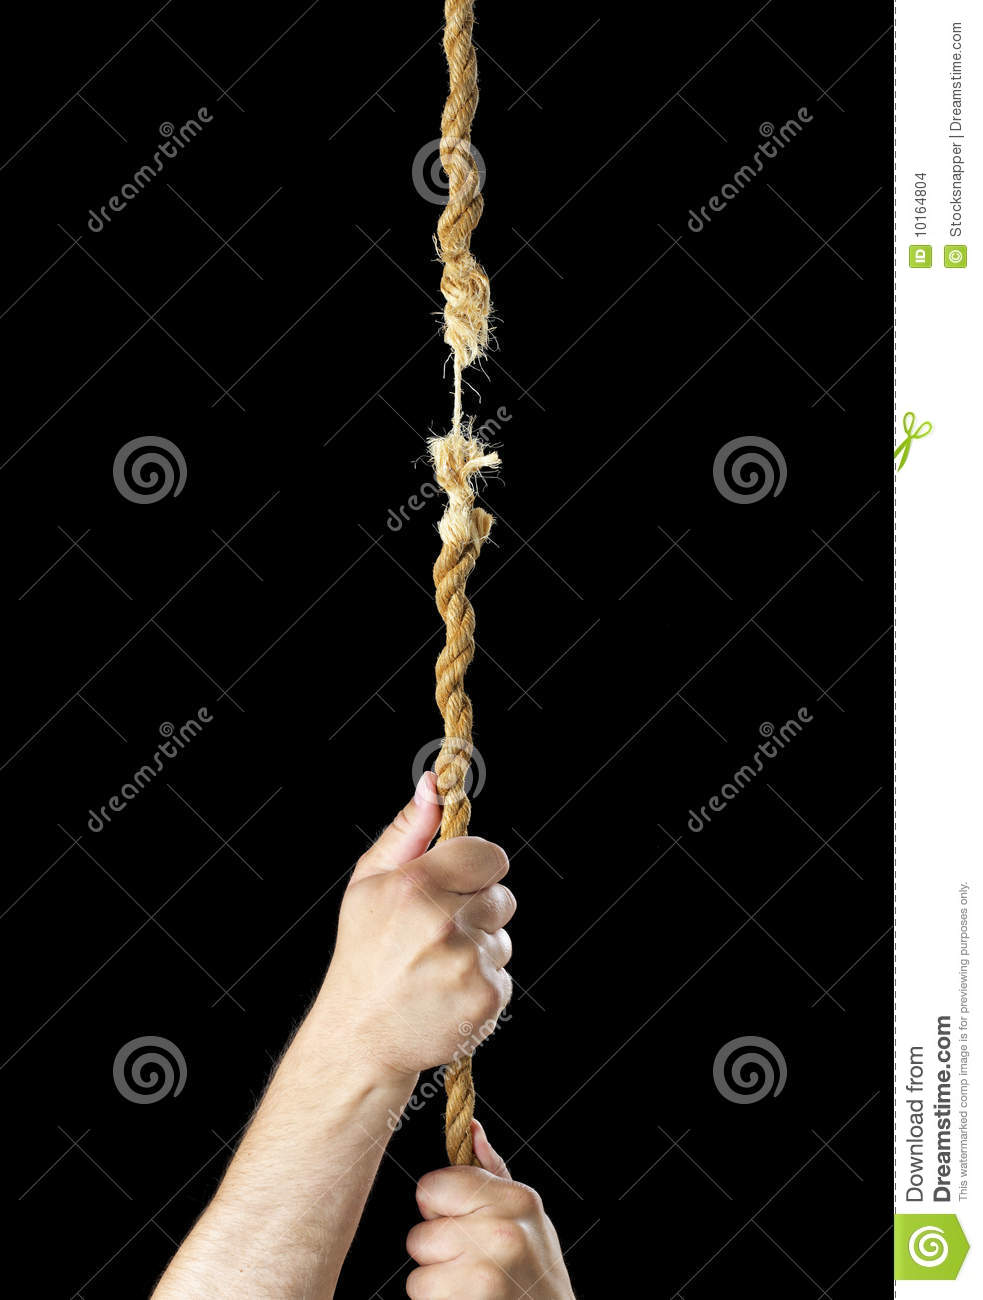 Hanging By A Thread Stock Images - Image: 10164804